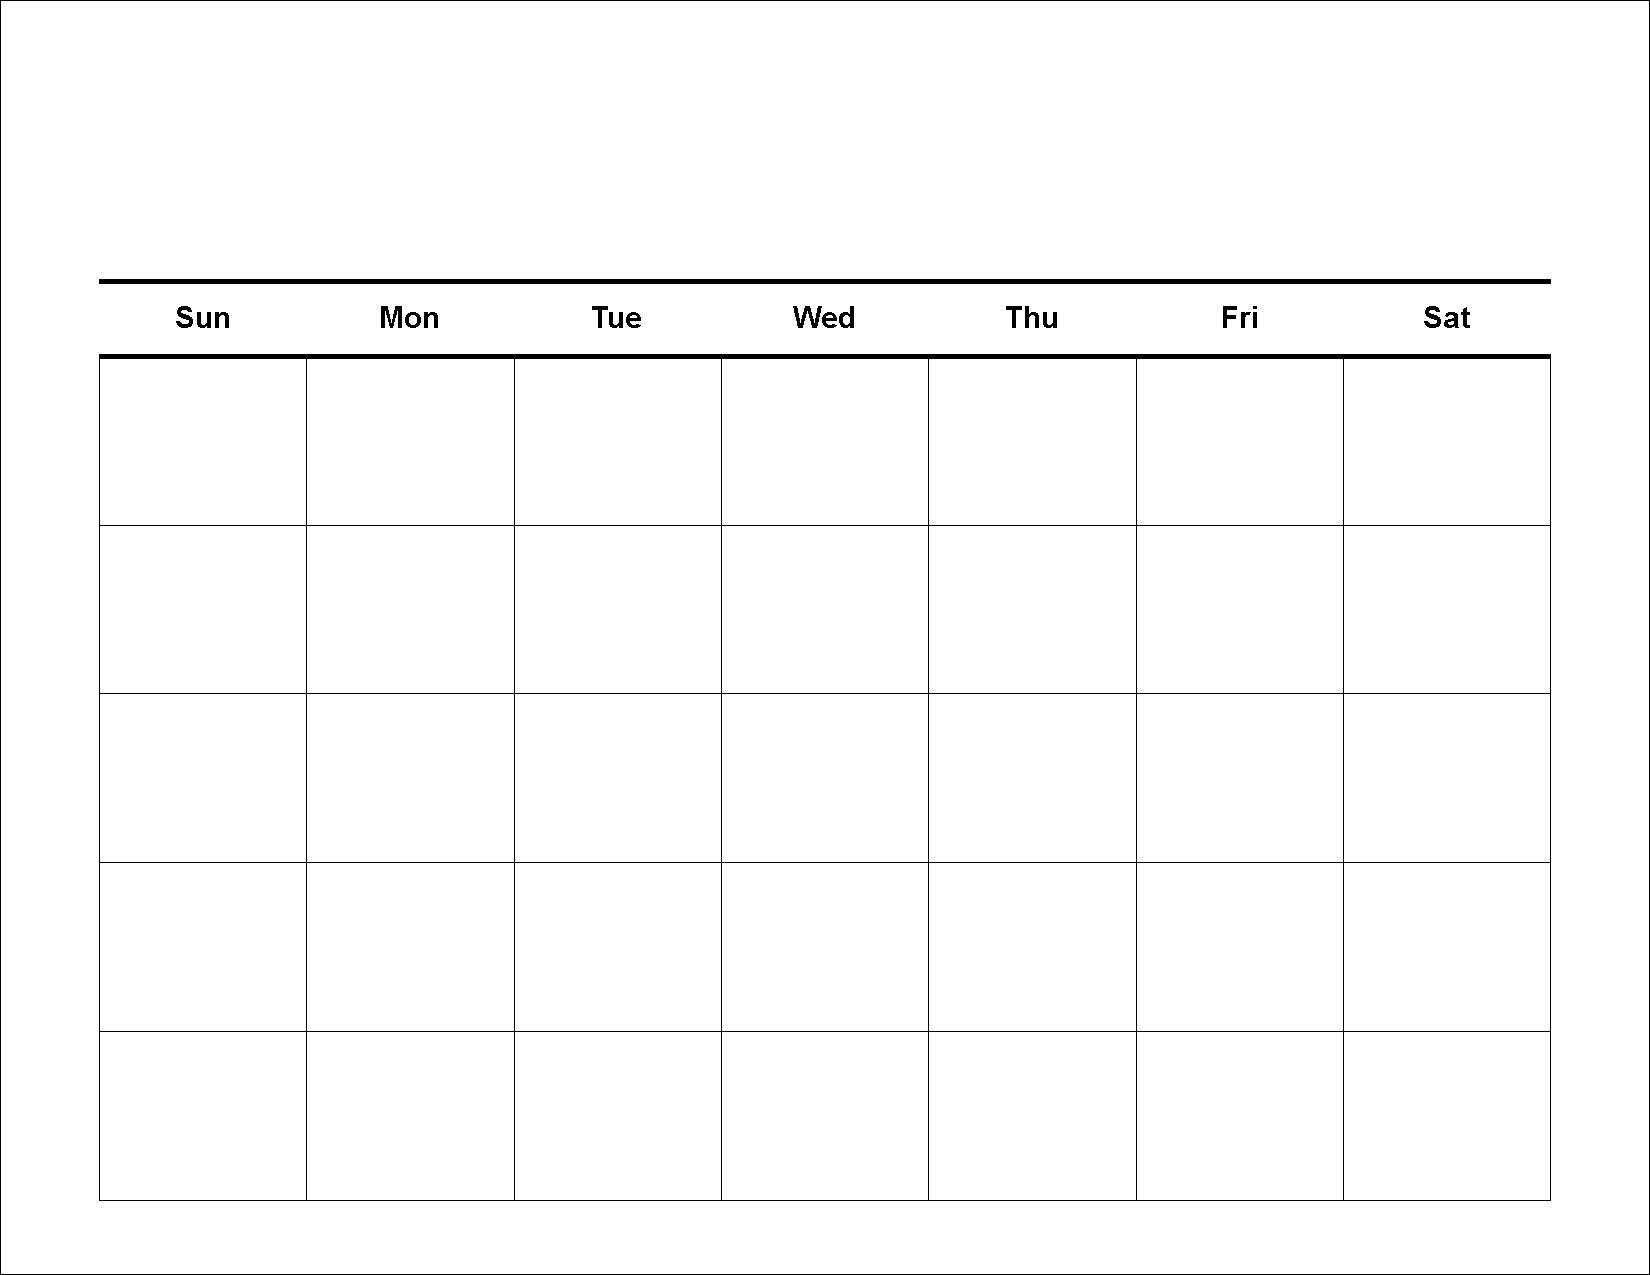 30-Day-Calendar-Template-Printable-Large throughout Print Off A Blank Calendar For